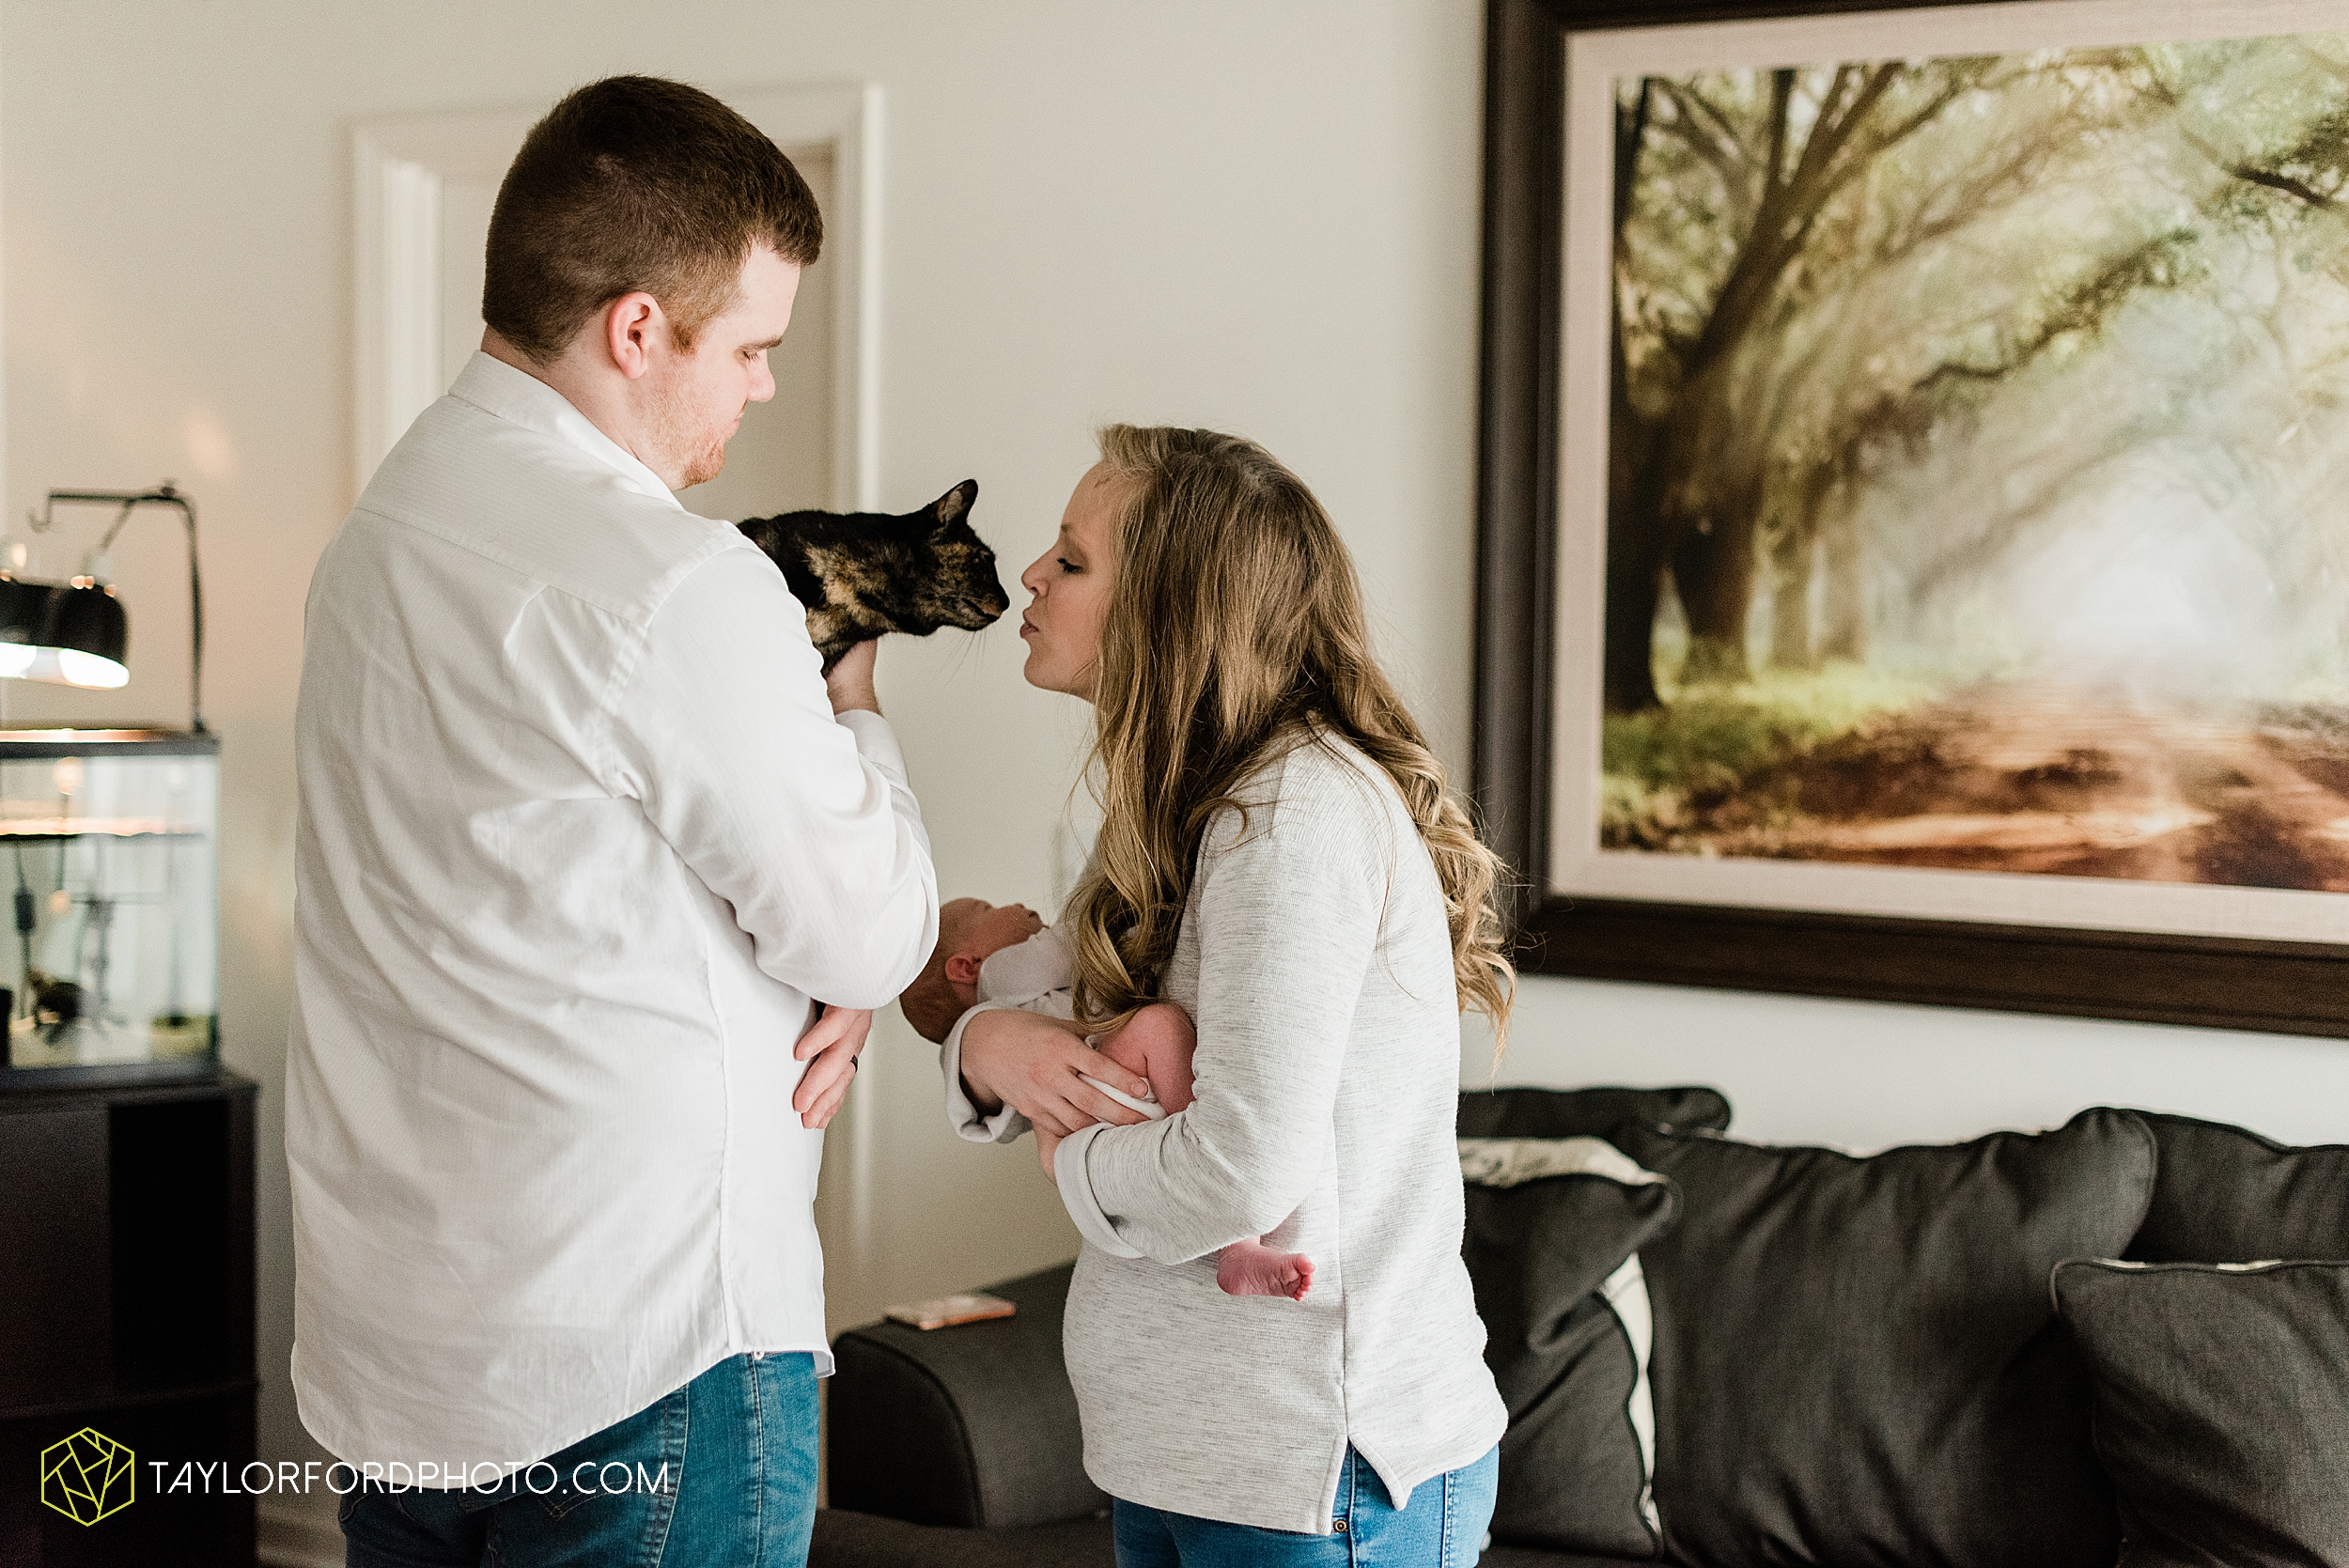 sarah-austin-harrison-lifestyle-at-home-family-newborn-fort-wayne-indiana-photography-taylor-ford-hirschy-photographer_2364.jpg